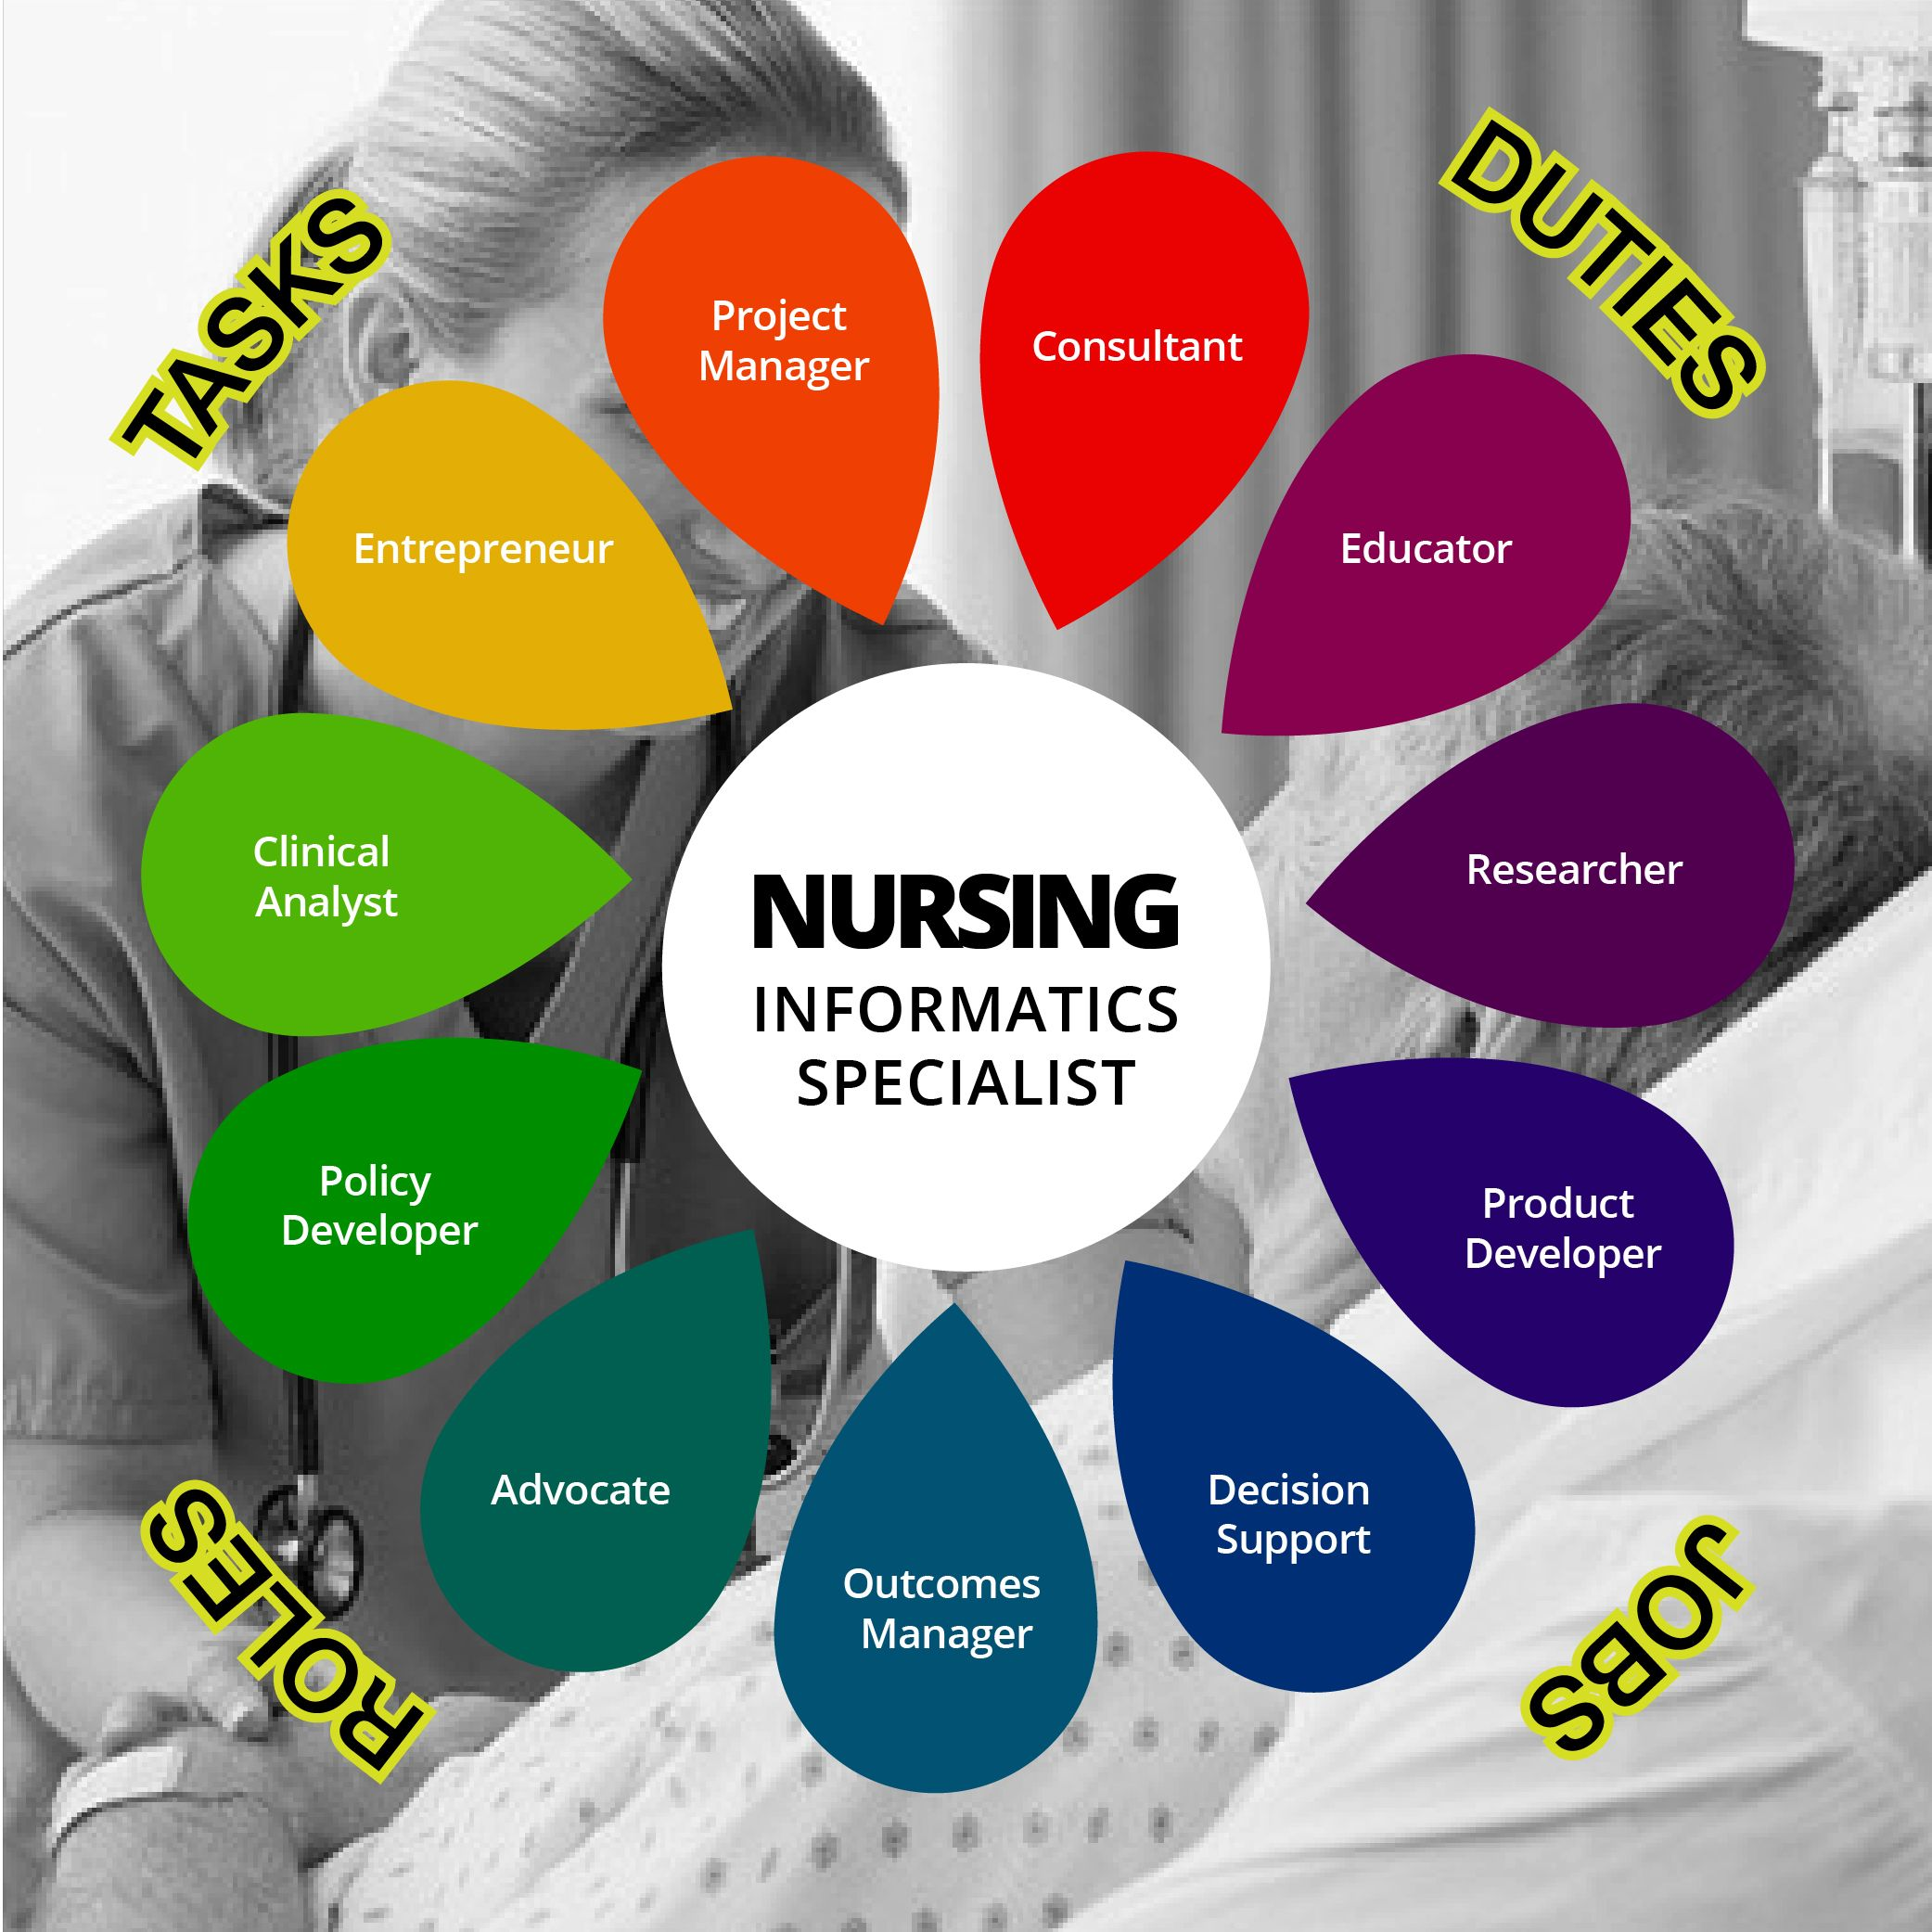 Nursing: Nursing Informatics Specialist Infographic Is One Of The